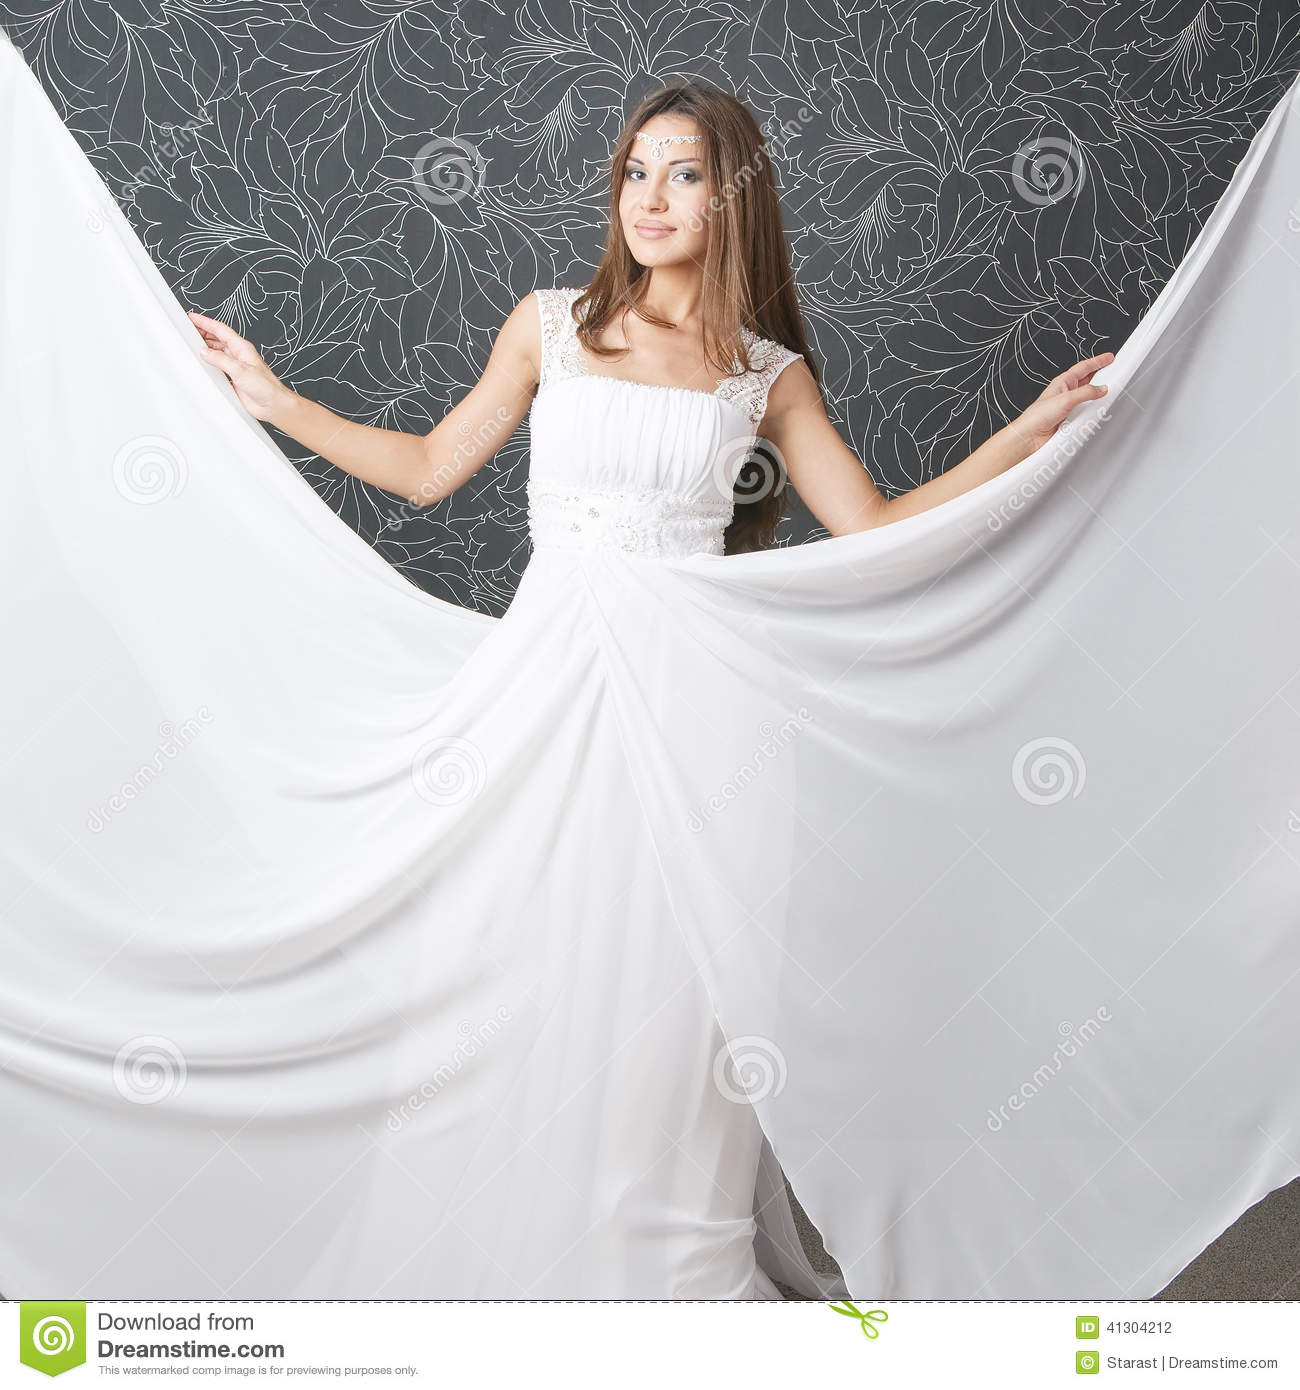 Beautiful Indian Woman In White Wedding Dress Stock Photo - Image of ...